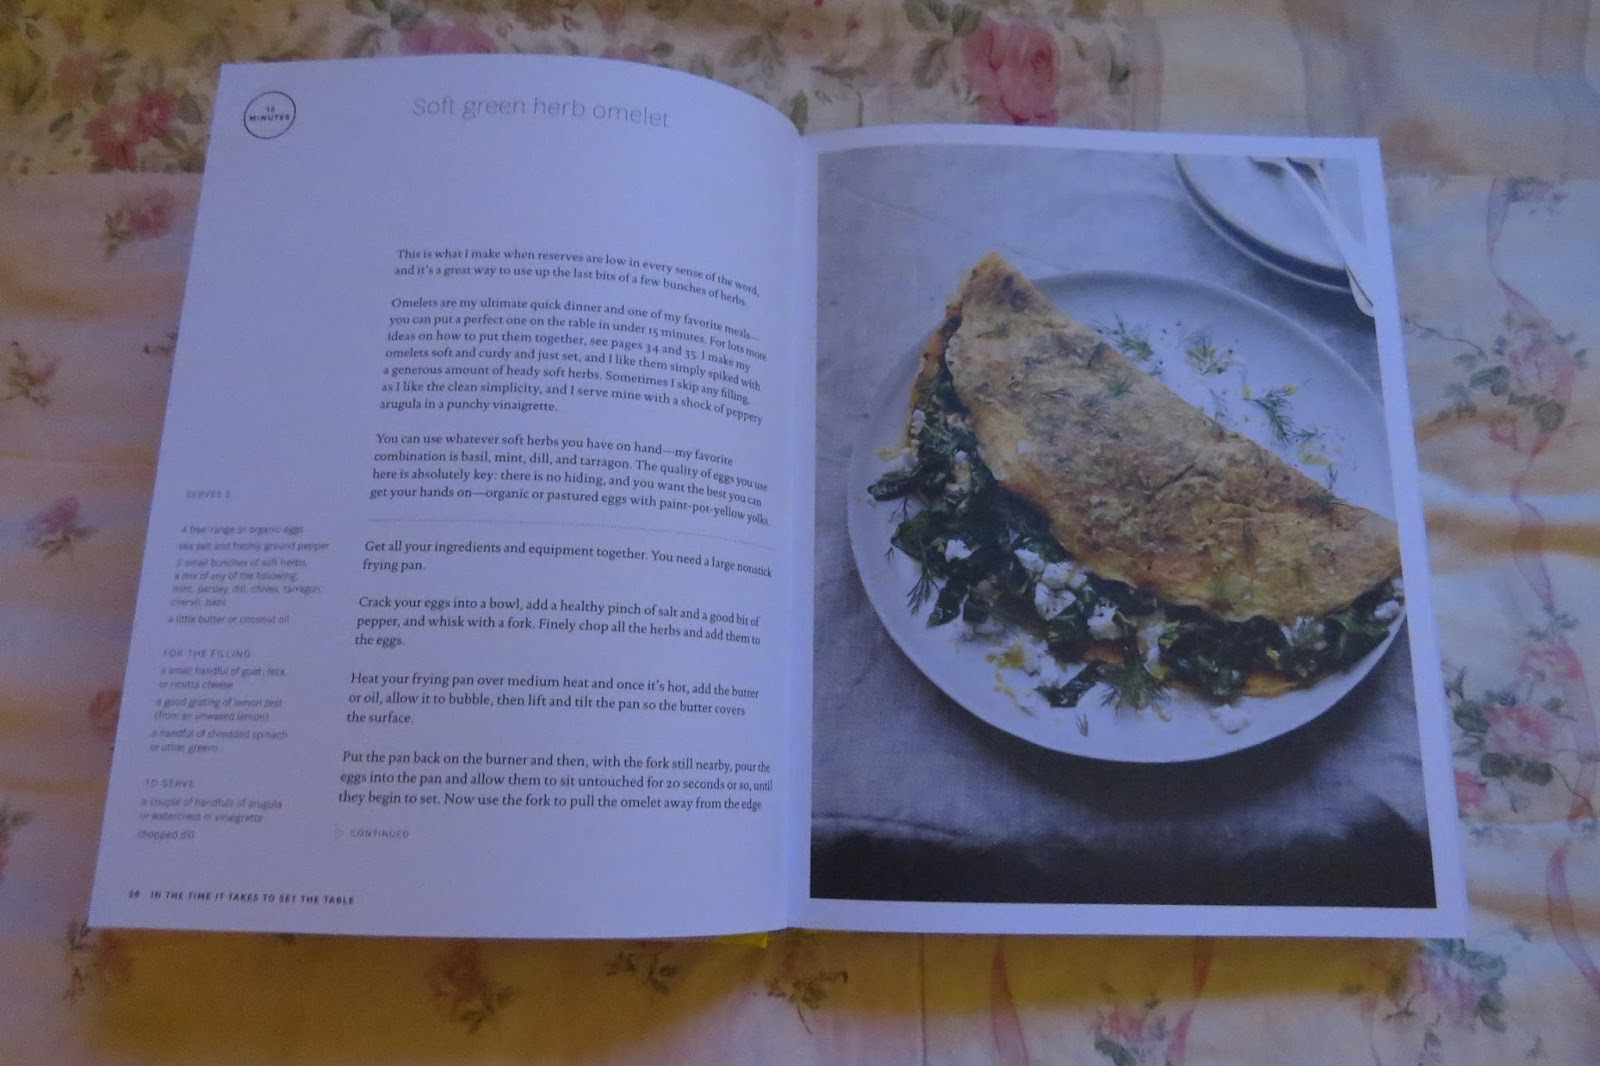 Readerbuzz a cookbook that just might make you a vegetarian a i read the book and i try a recipe soft green herb omelet it is in the very first section of the book the one that promised a meal in fifteen minutes forumfinder Choice Image